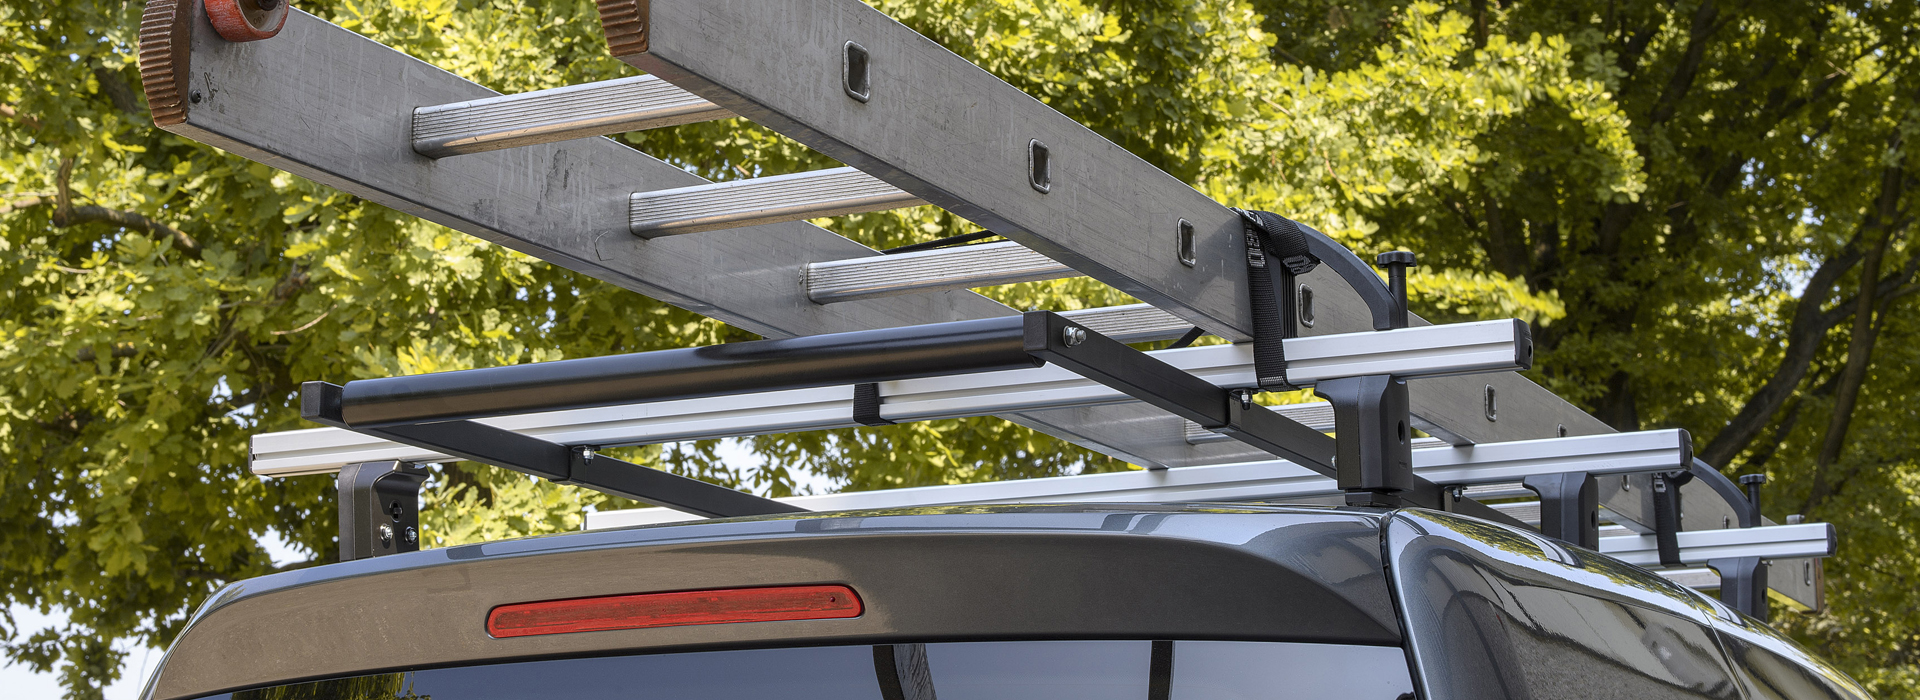 Roof bars for commercial vehicles